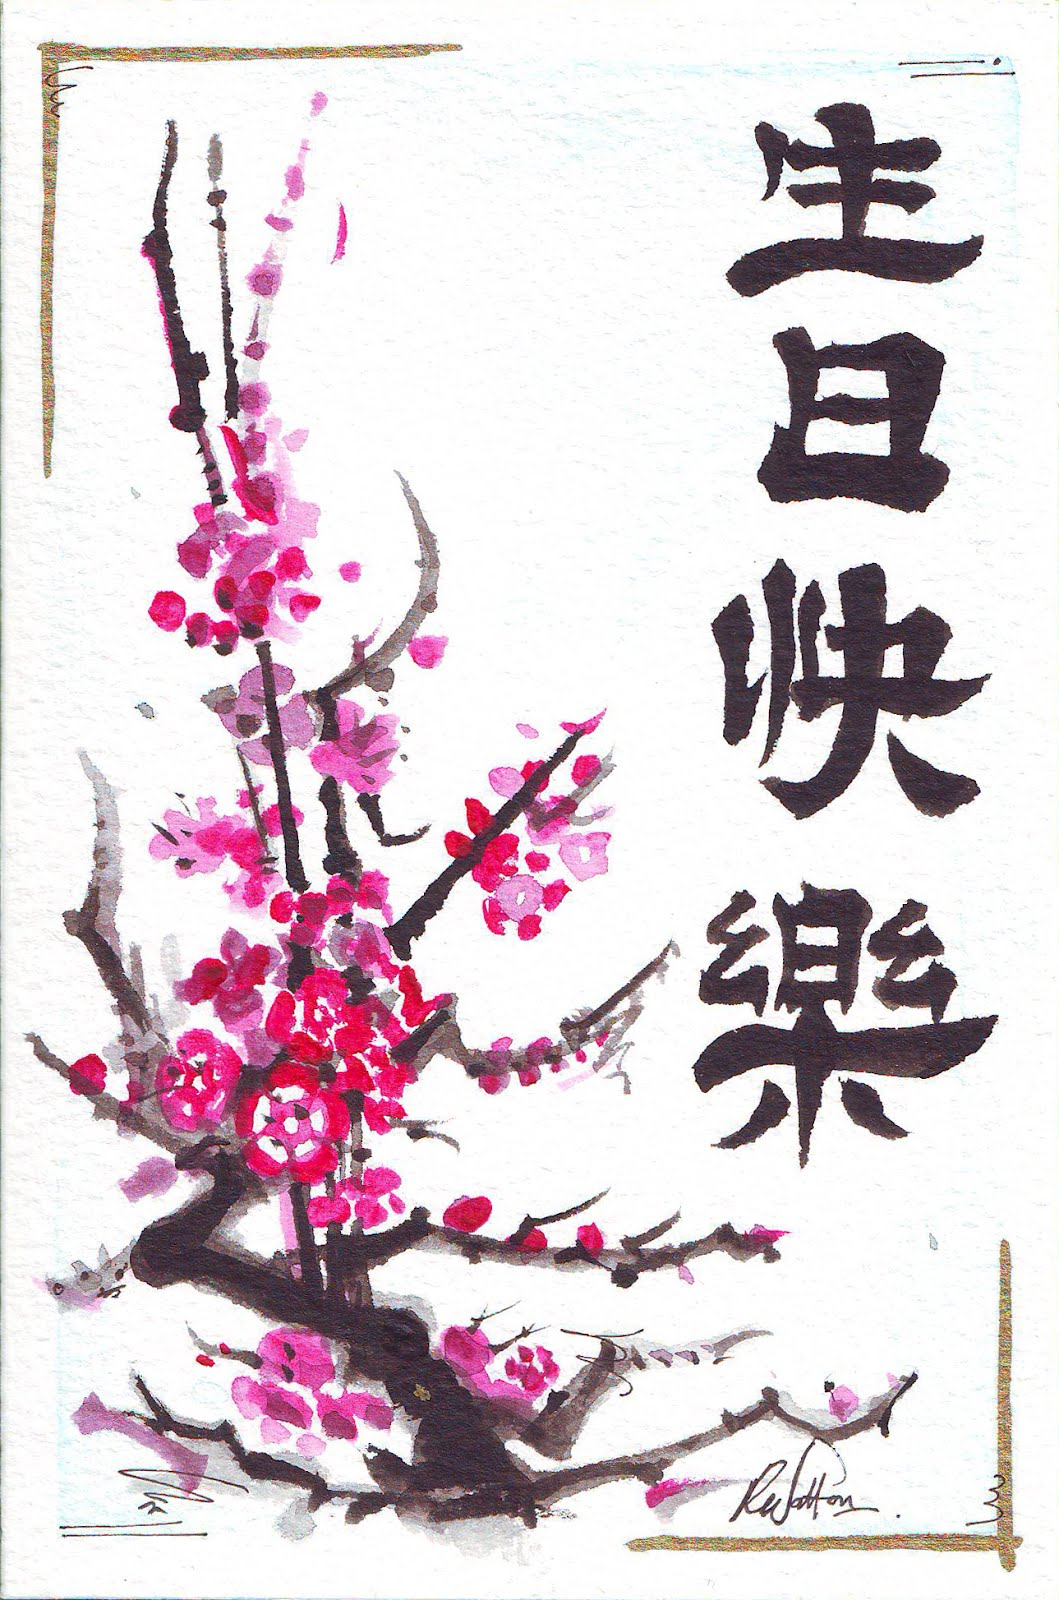 chinese birthday invitations with lucky red color ; 0a11fb59294b157a51701588771aef21